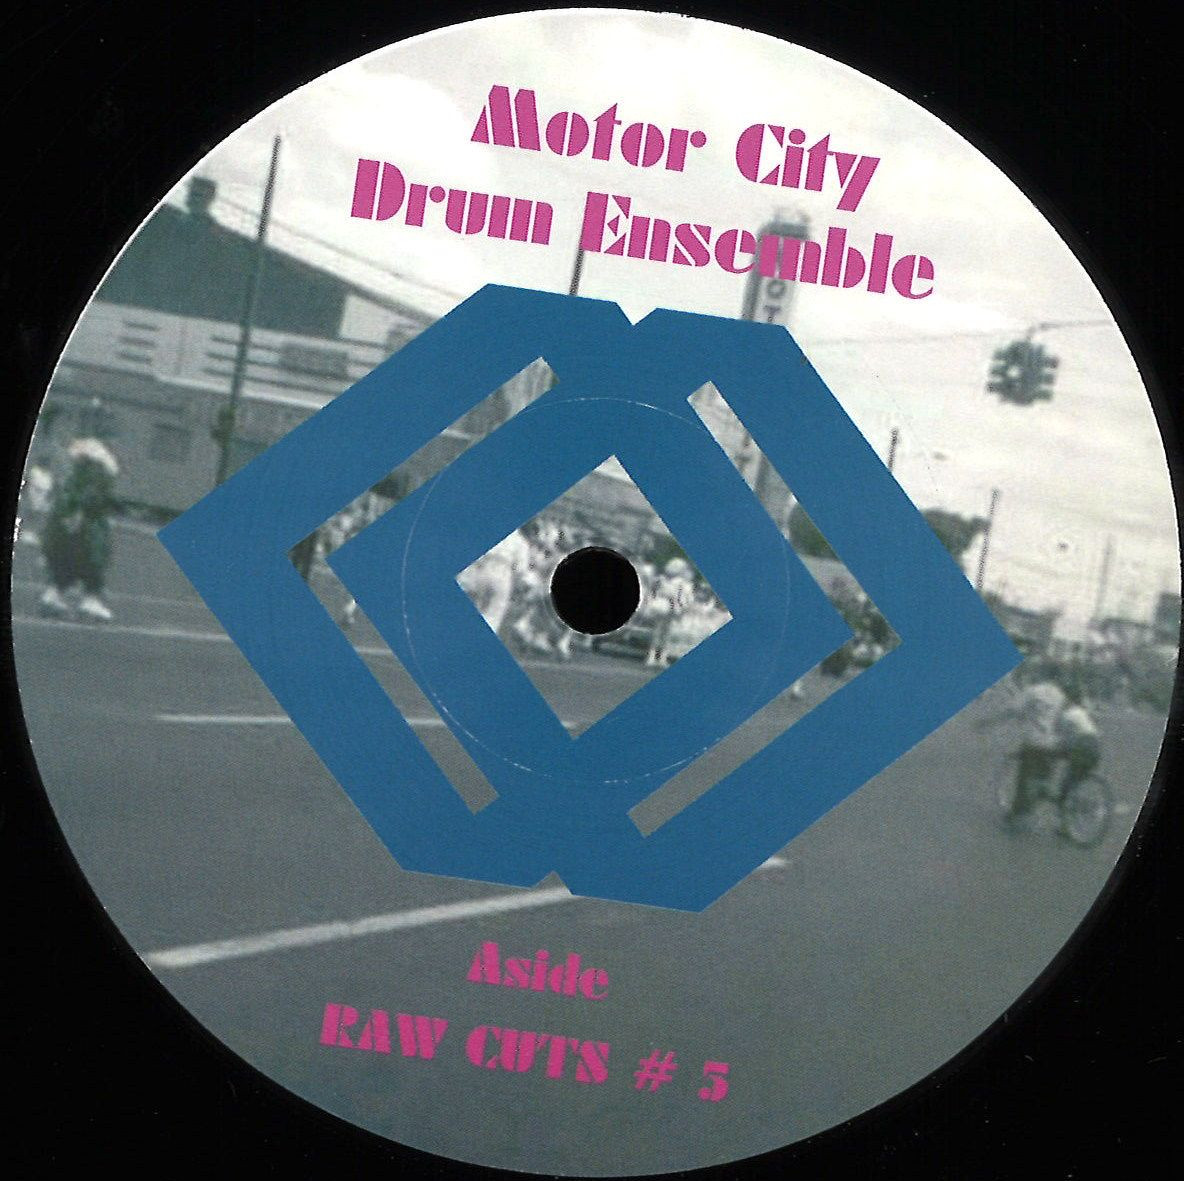 Motor City Drum Ensemble - Raw Cuts 5 / 6 / Motor City Drum Ensemble MCDE1205 - Vinyl